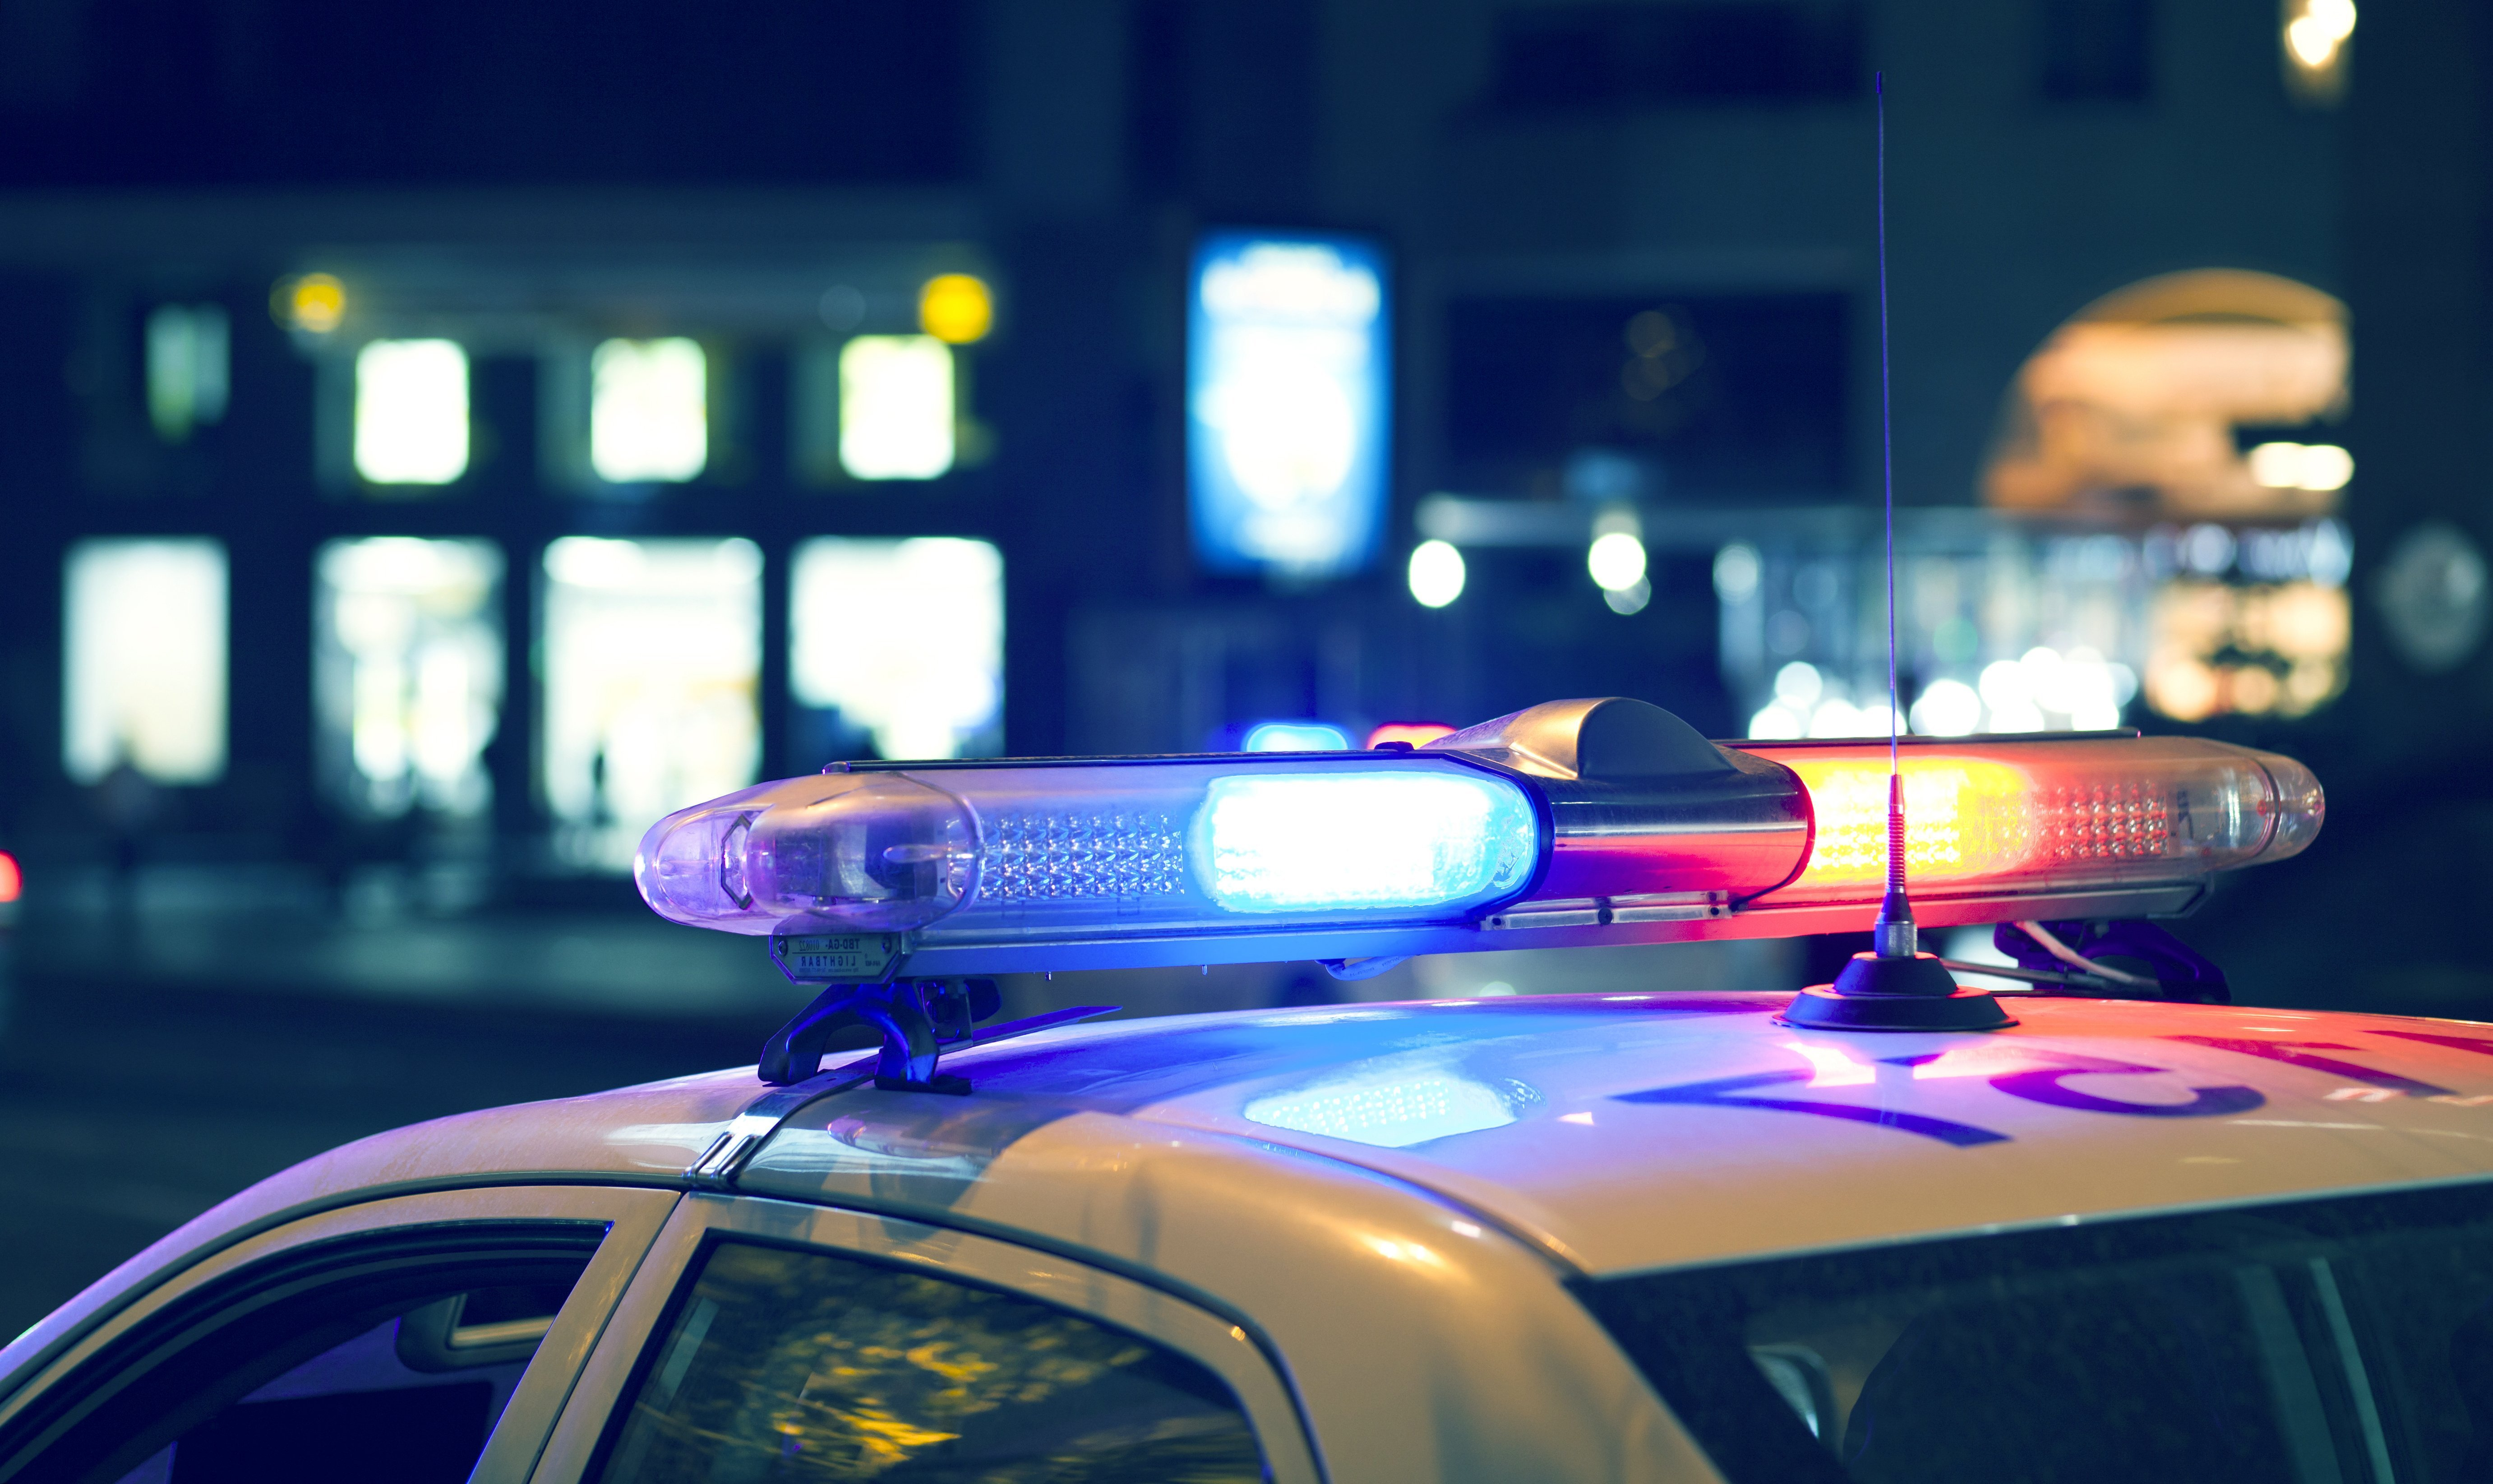 Police patrol with lights on. | Photo: Shutterstock